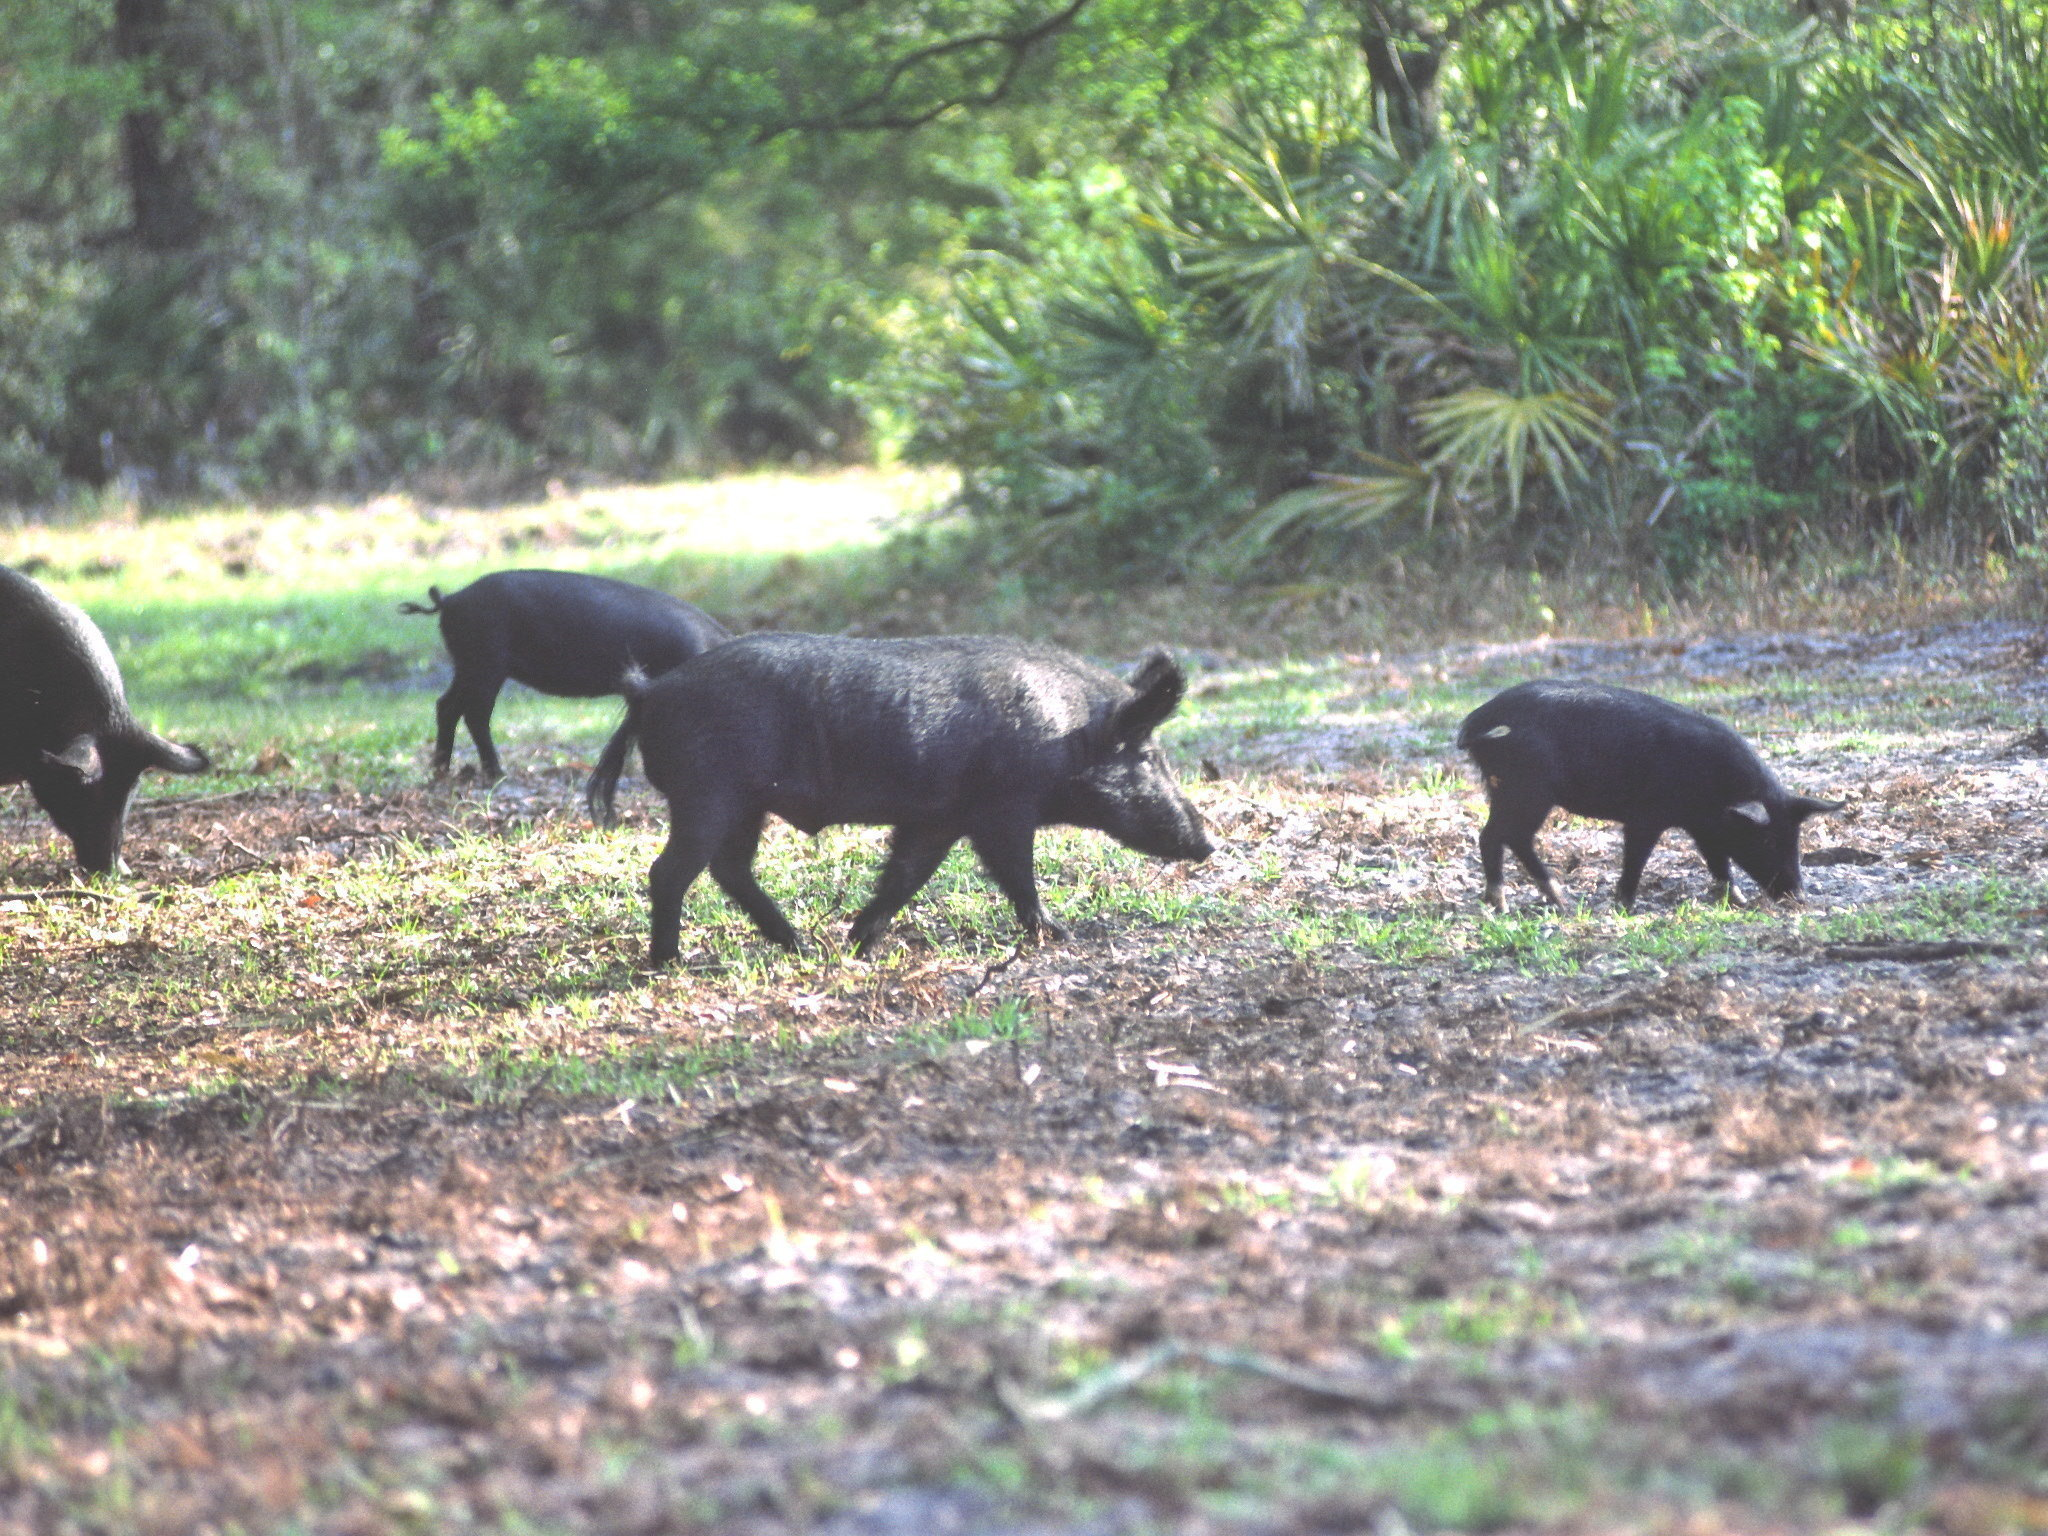 Plague of wild pigs has U.S. authorities squealing